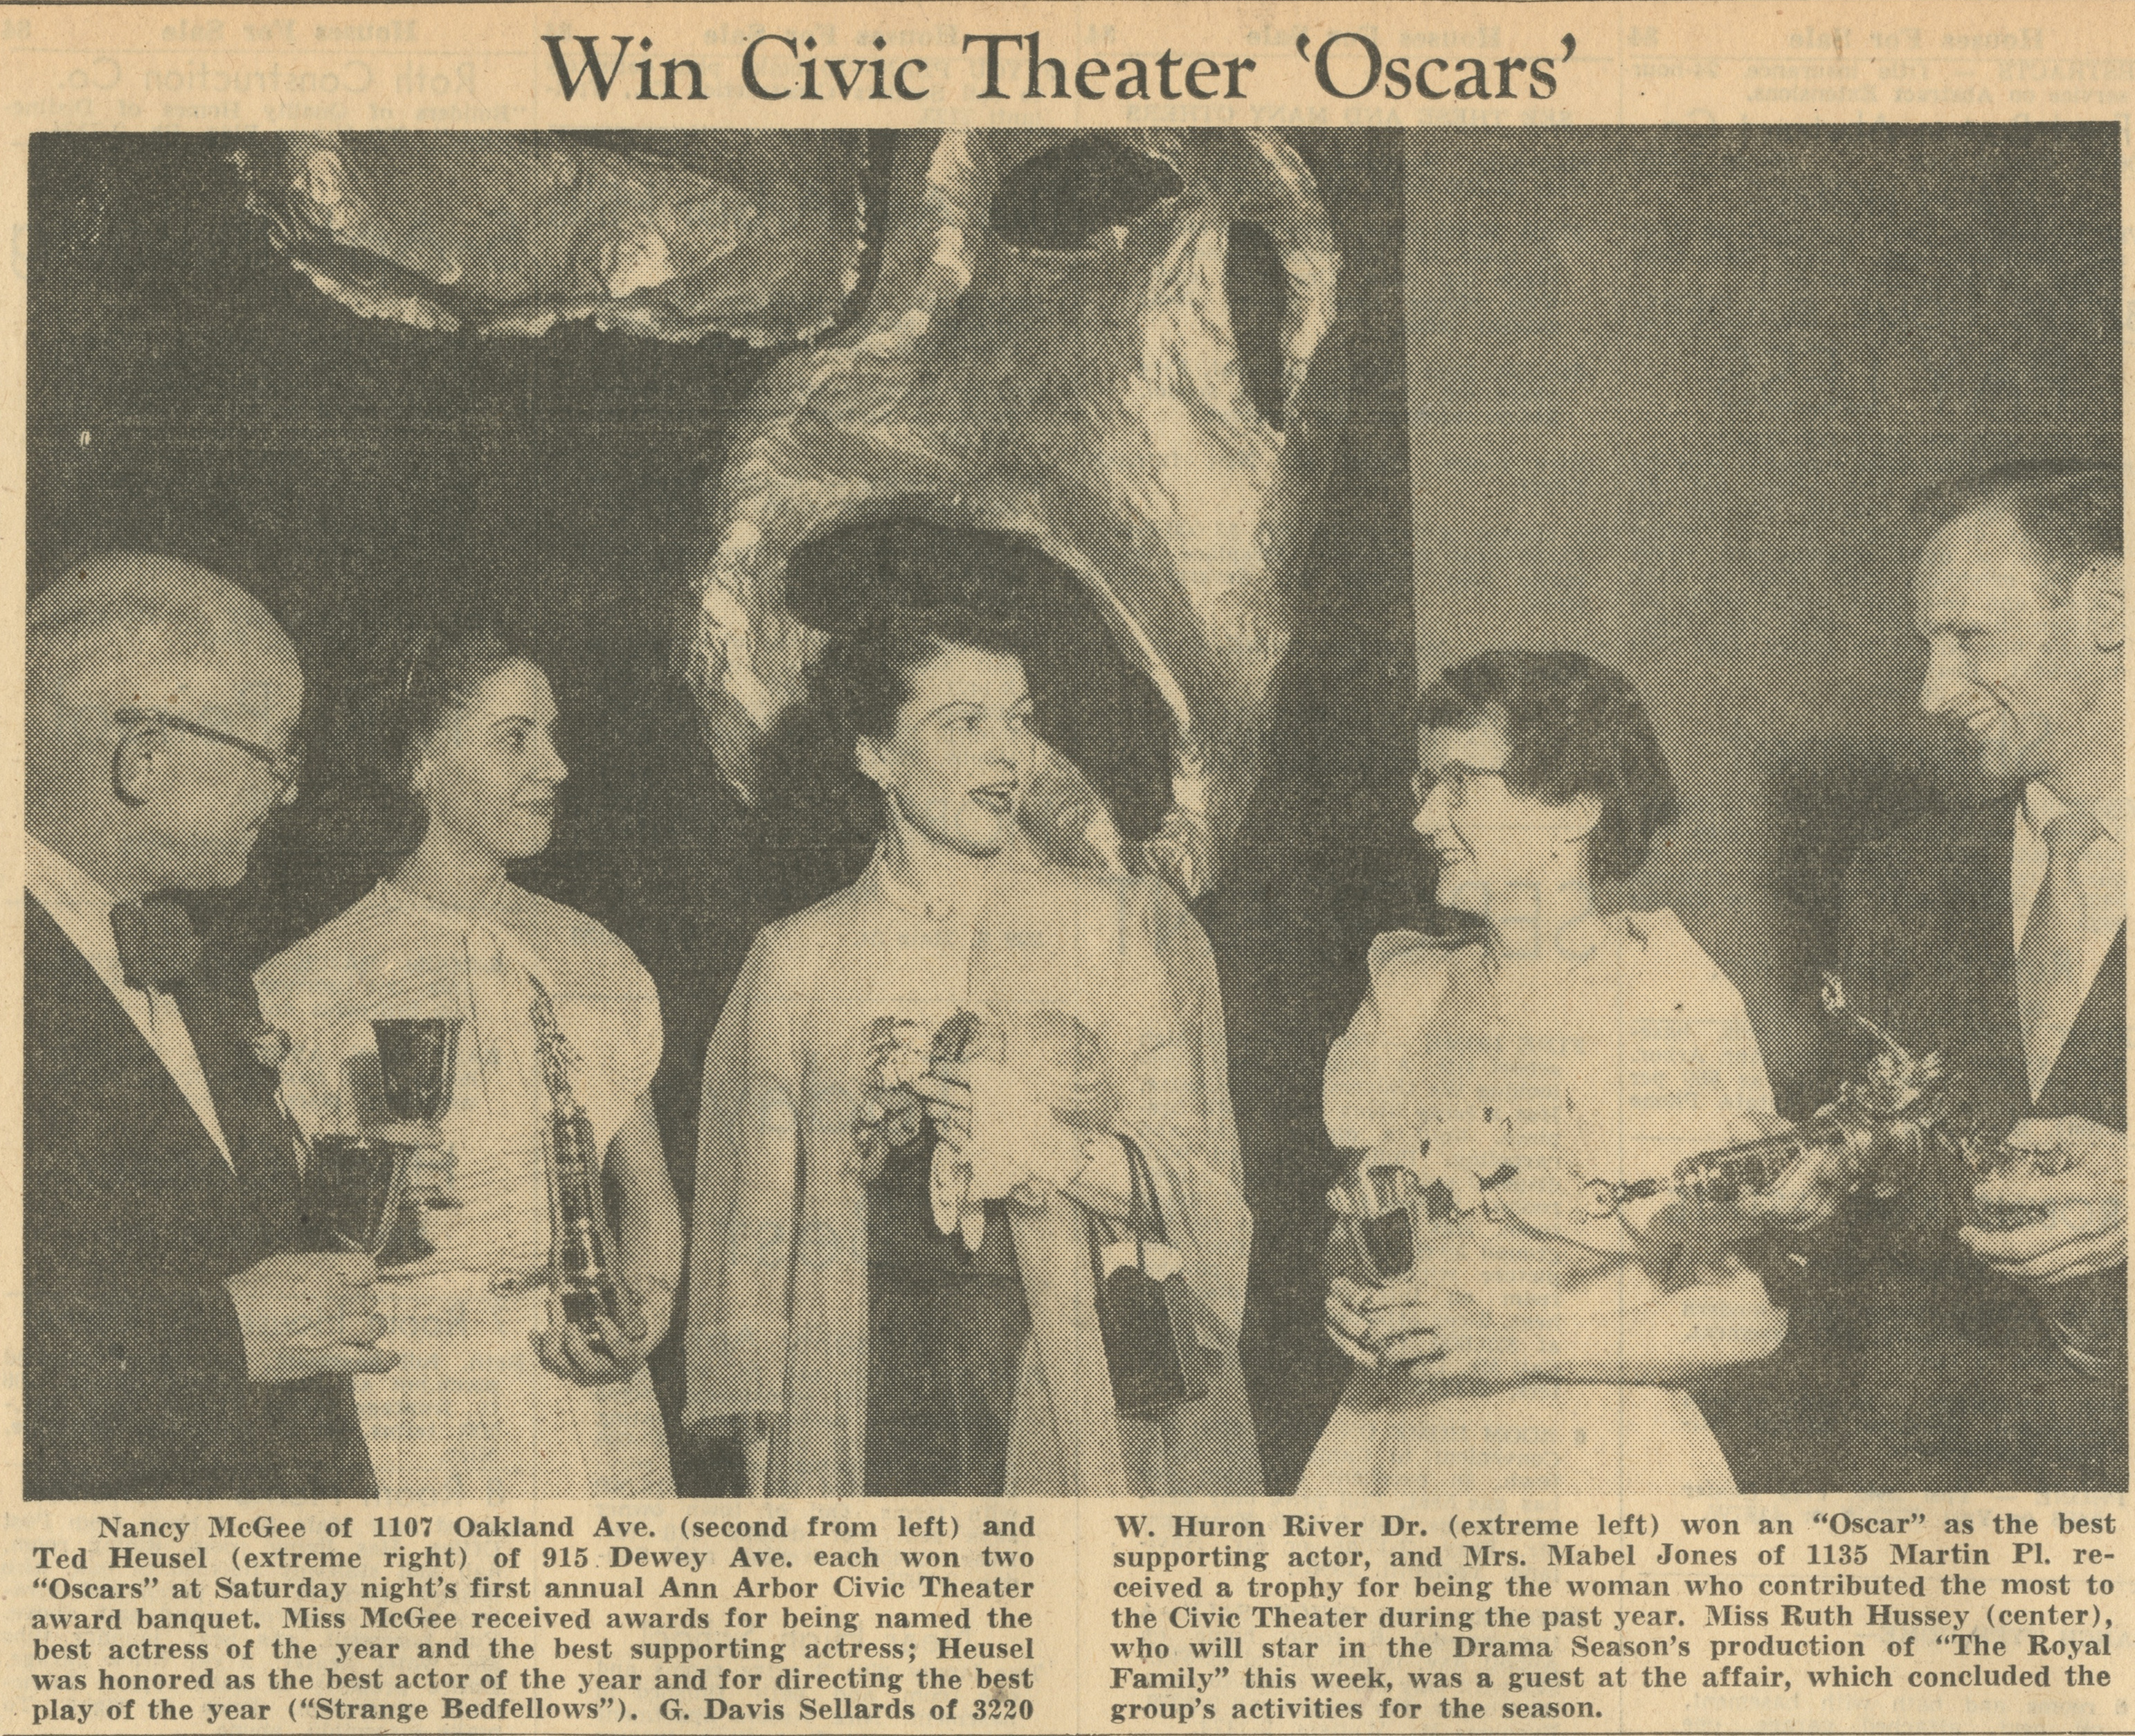 Win Civic Theater 'Oscars' image